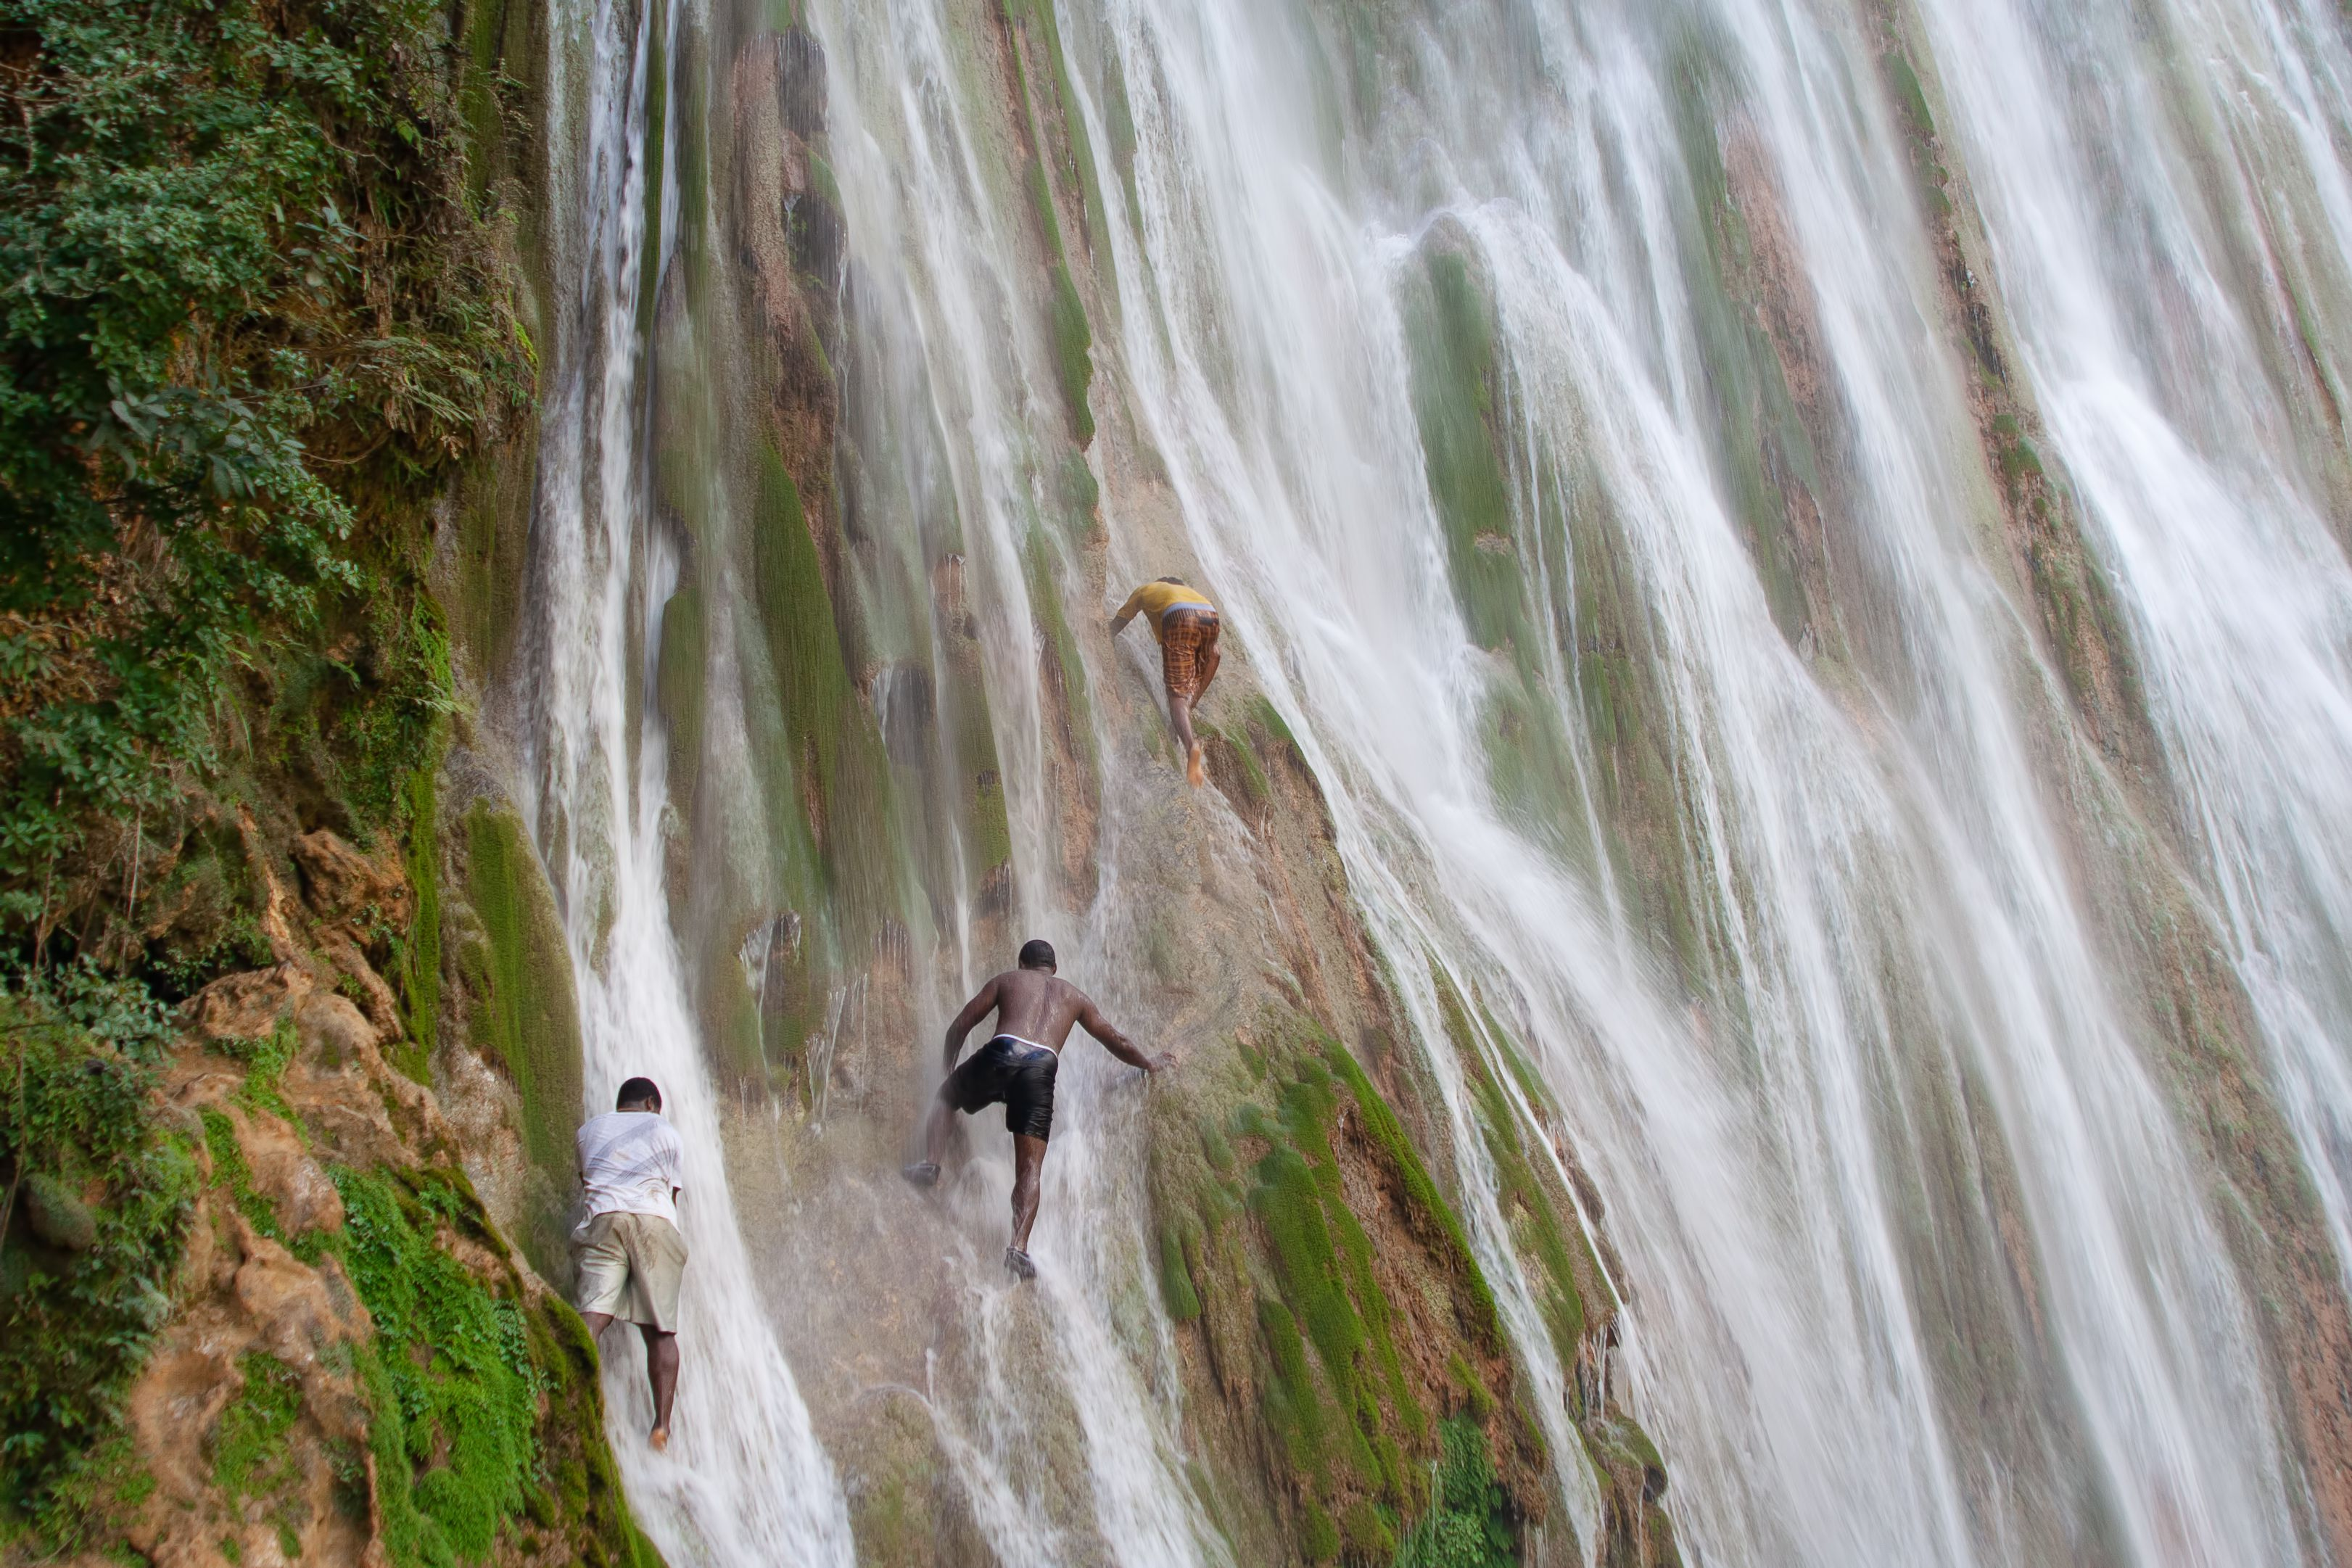 Young guys climb the ledges of a cliff on the waterfall